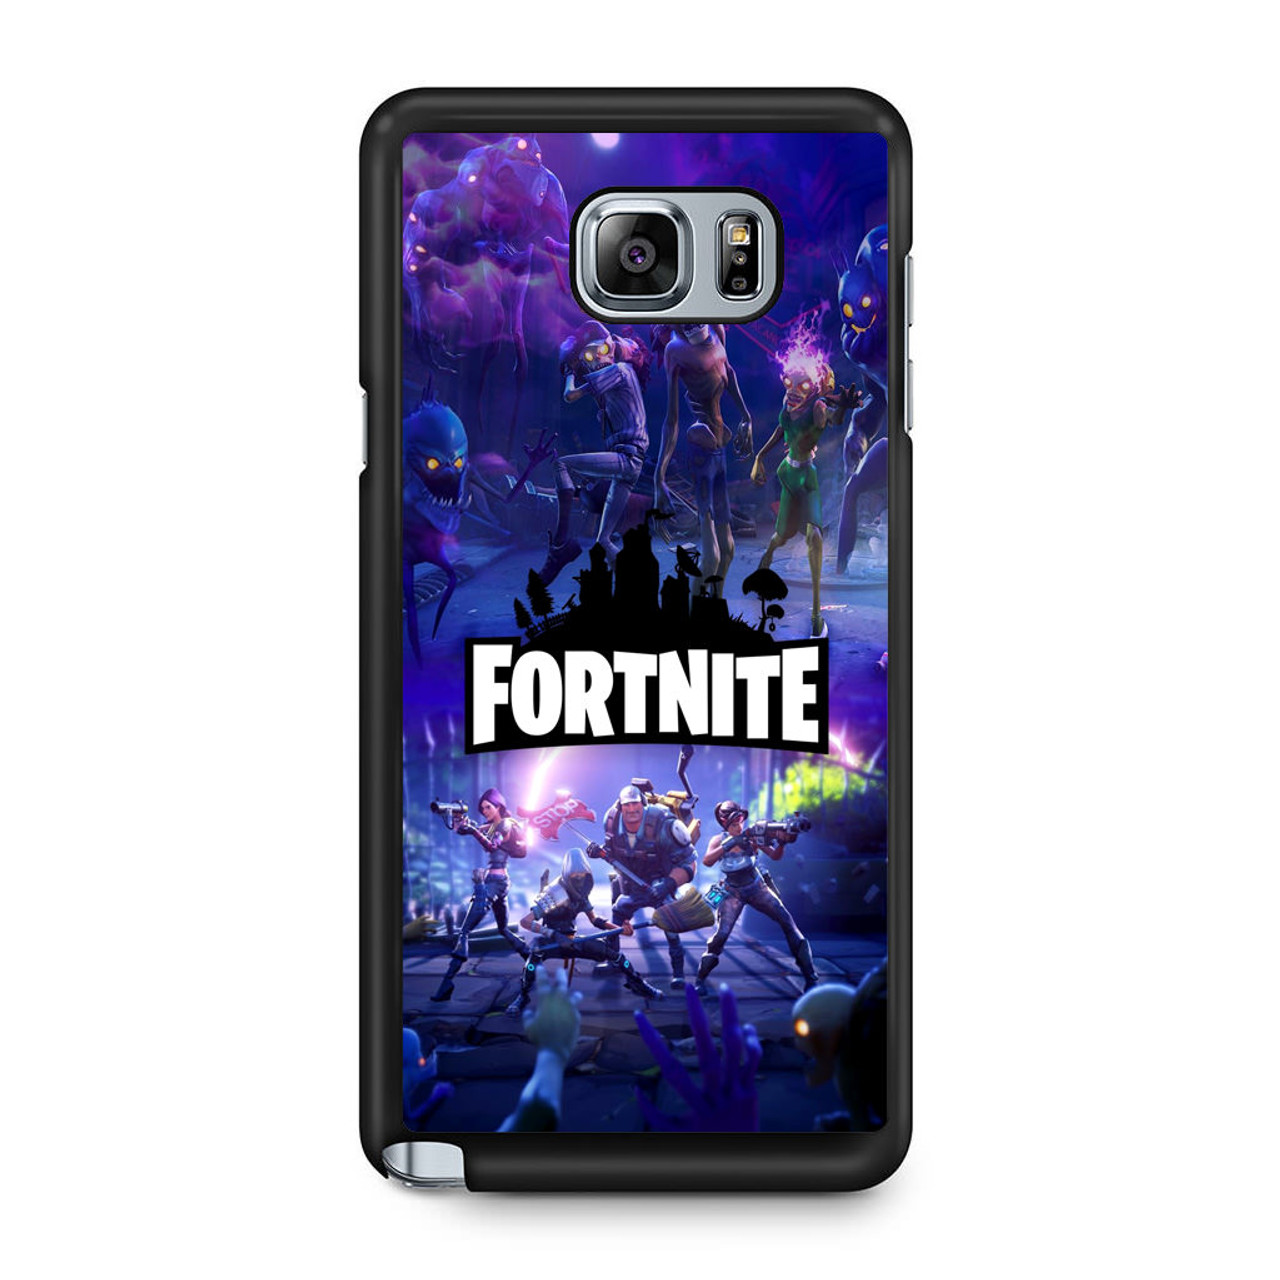 outlet store 0100f 2e835 Fortnite Samsung Galaxy Note 5 Case